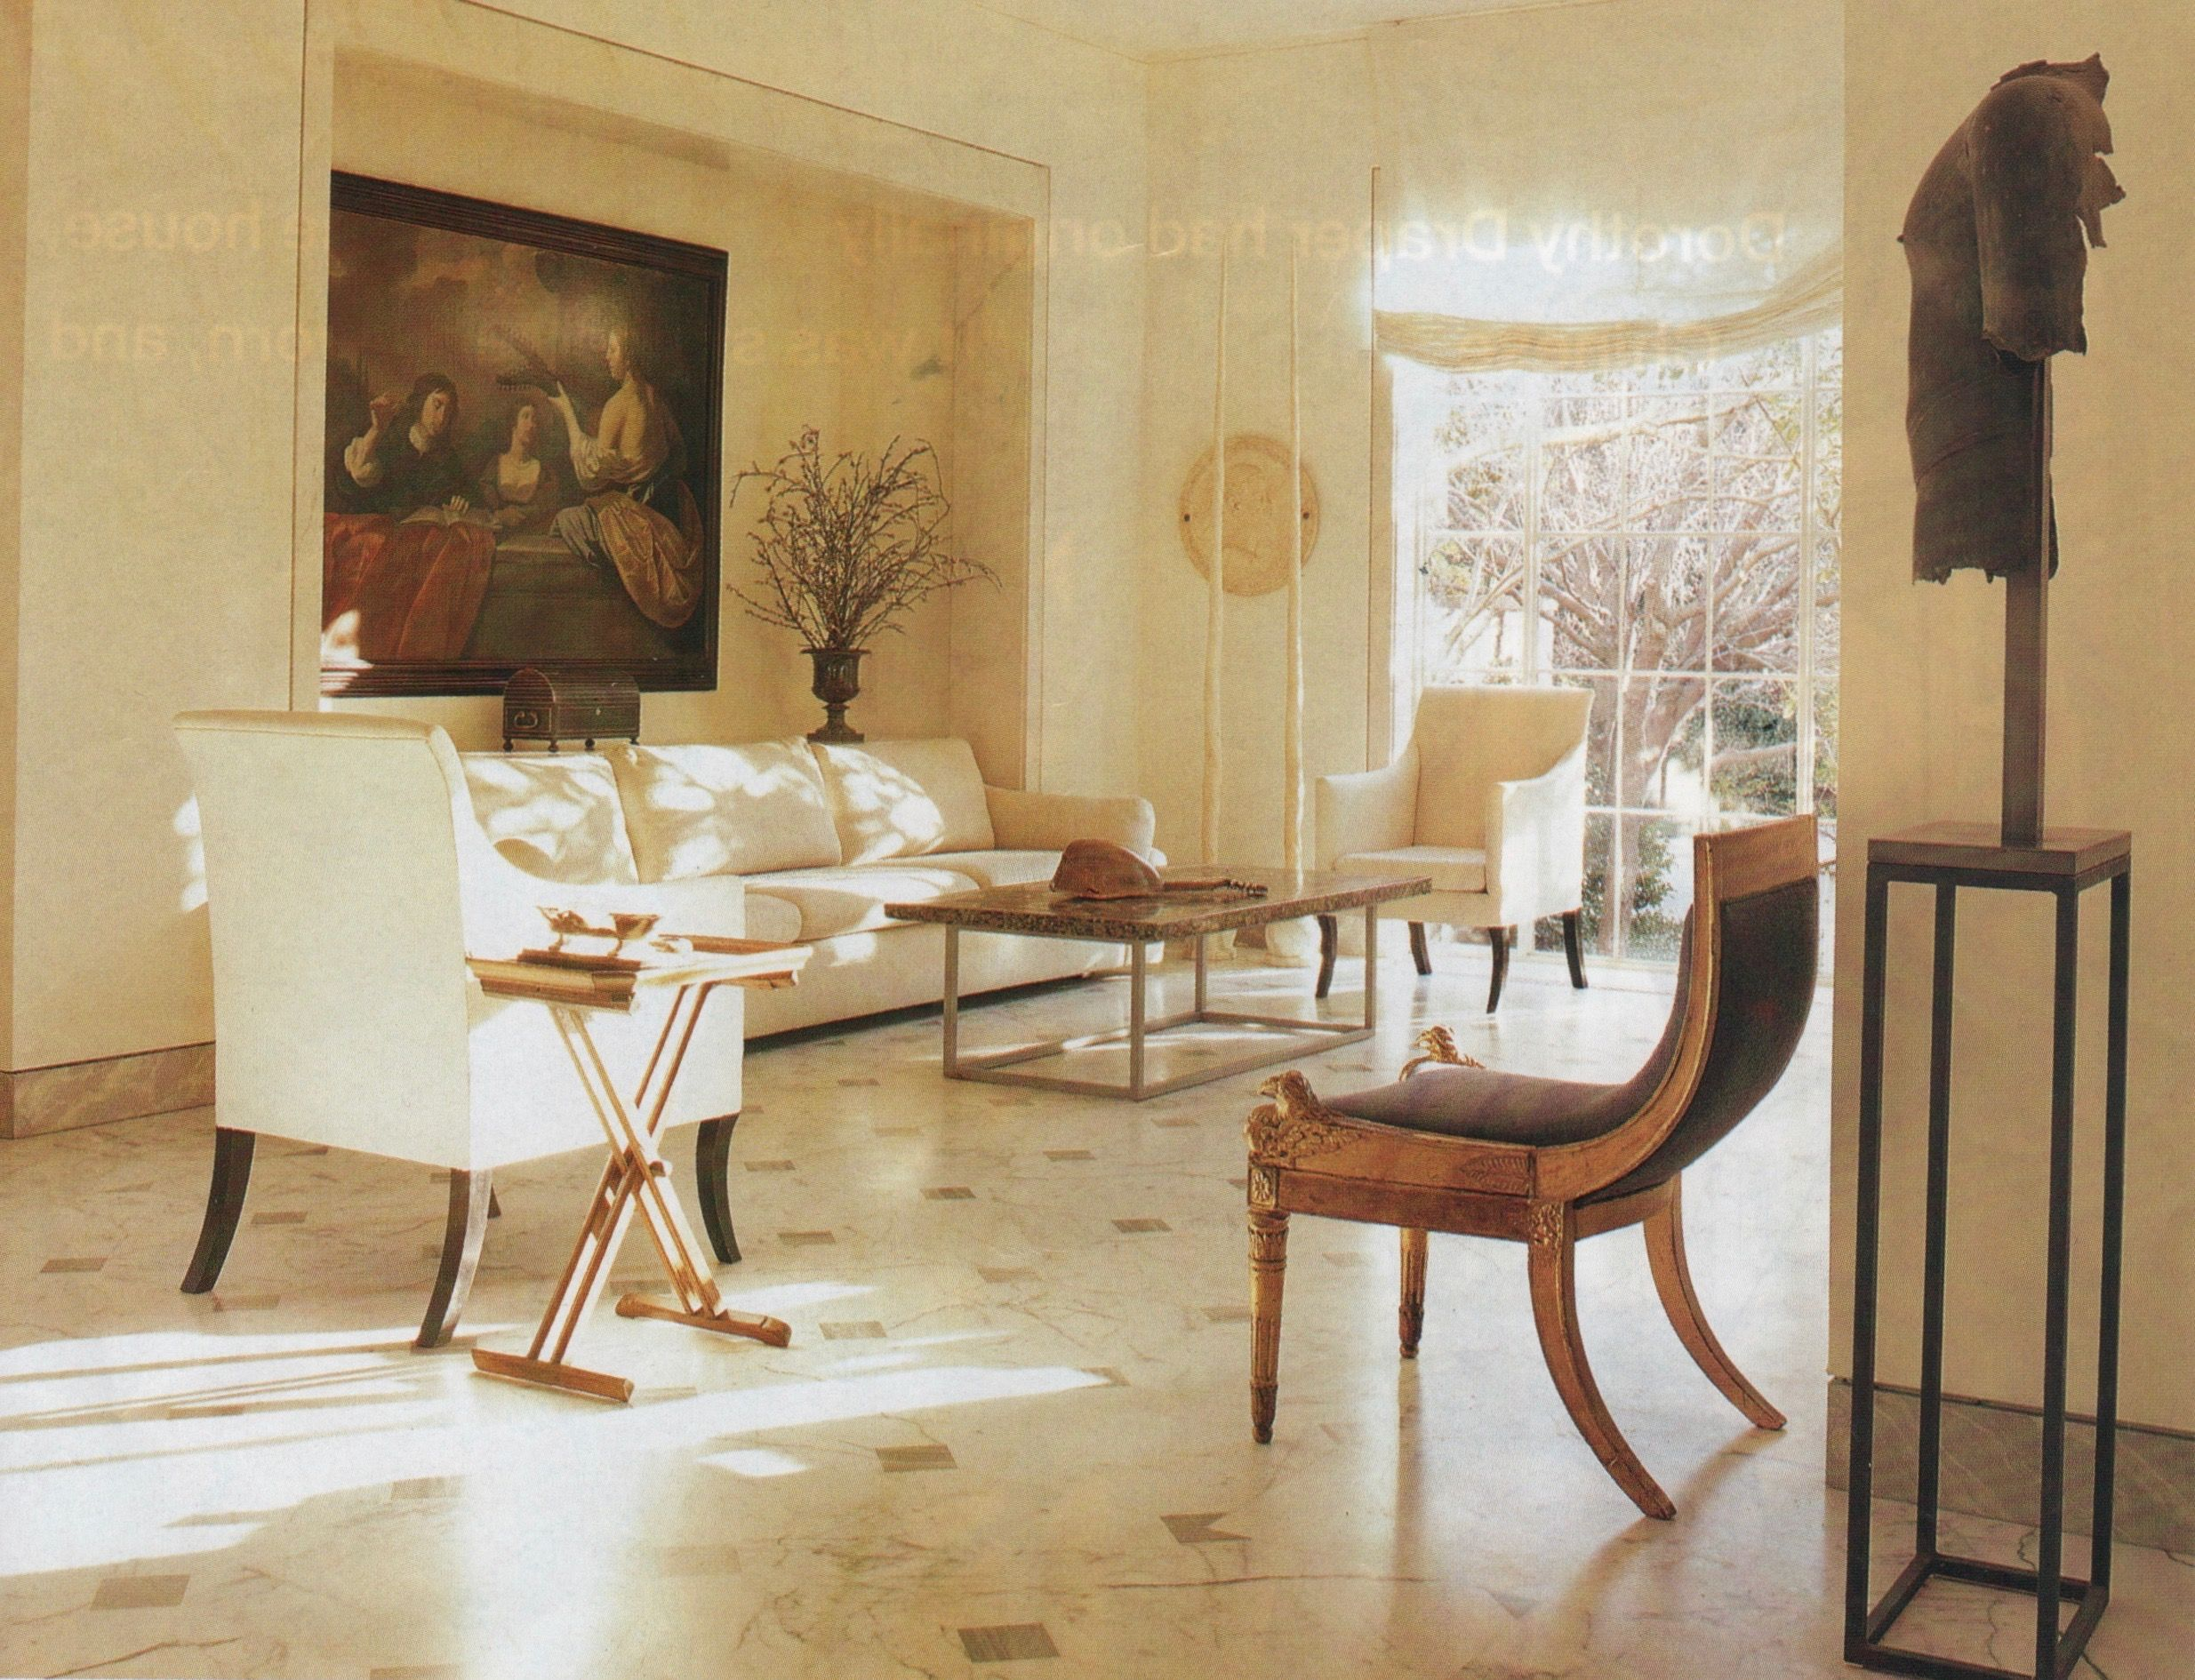 Marvelous Axel Vervoordt Dallas Home Of Betty Gertz Southern Accents Peter Estersohn